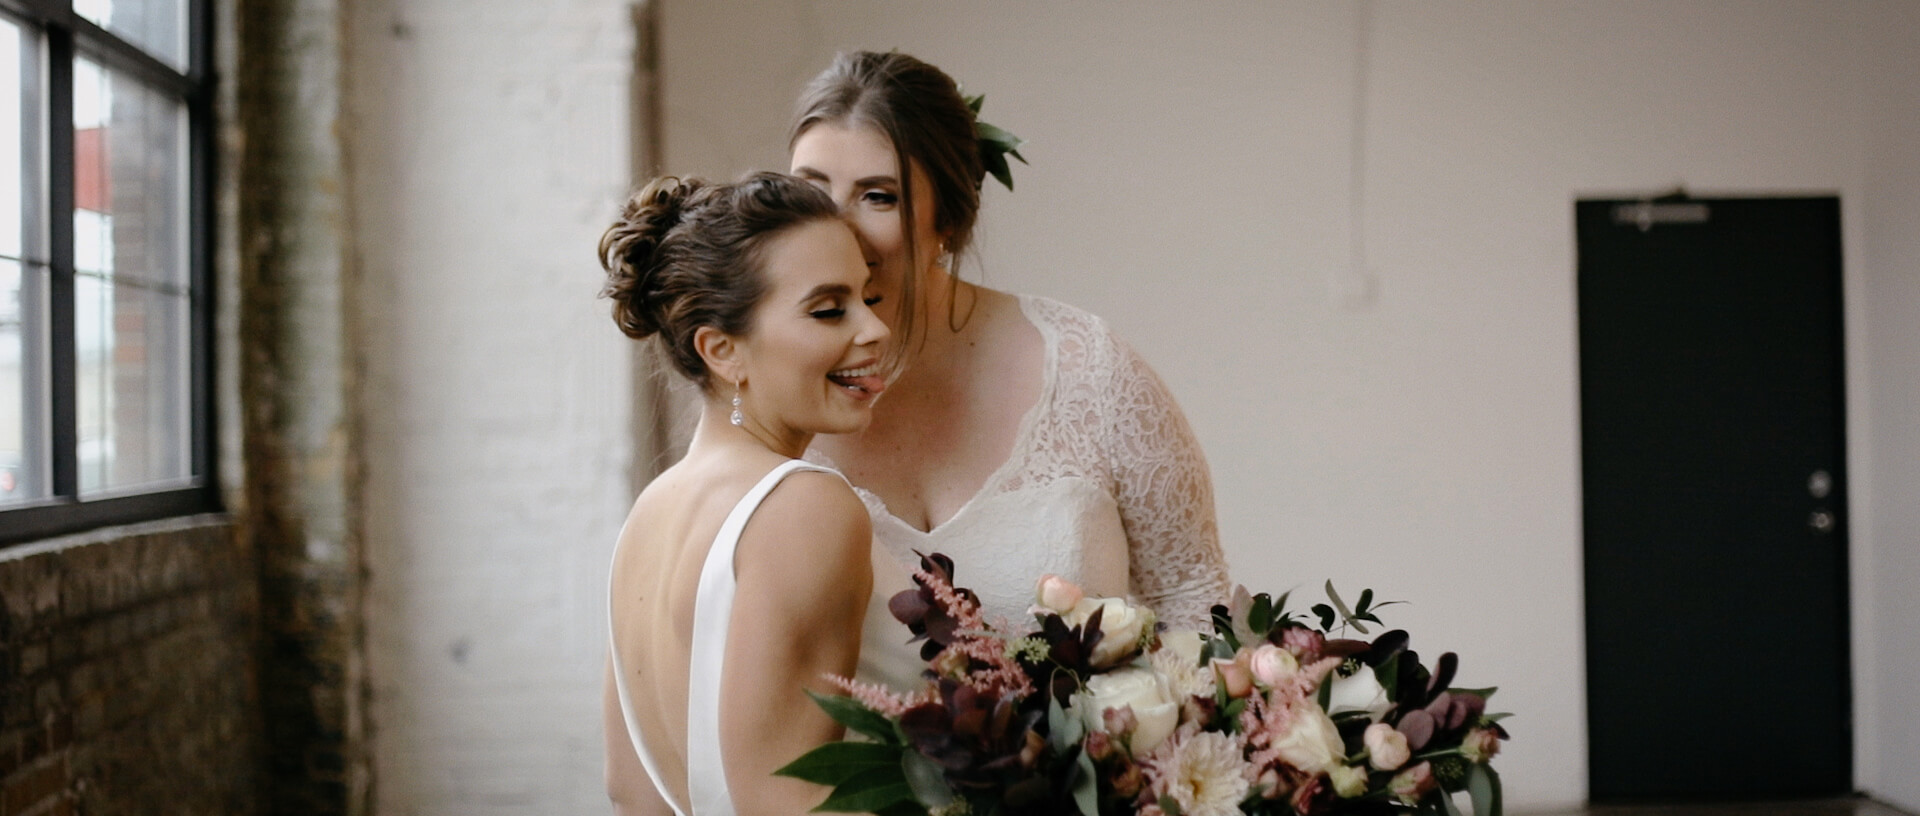 collection 3 - $4950 - 10 hours coverage // 4-5 minute highlight film // 25+ minute doc film // ceremony film // toasts film // RAW footage // rehearsal dinner coverage // super 8mm film coverage including processing, scanning + digitizing // personalized USB + keepsake box